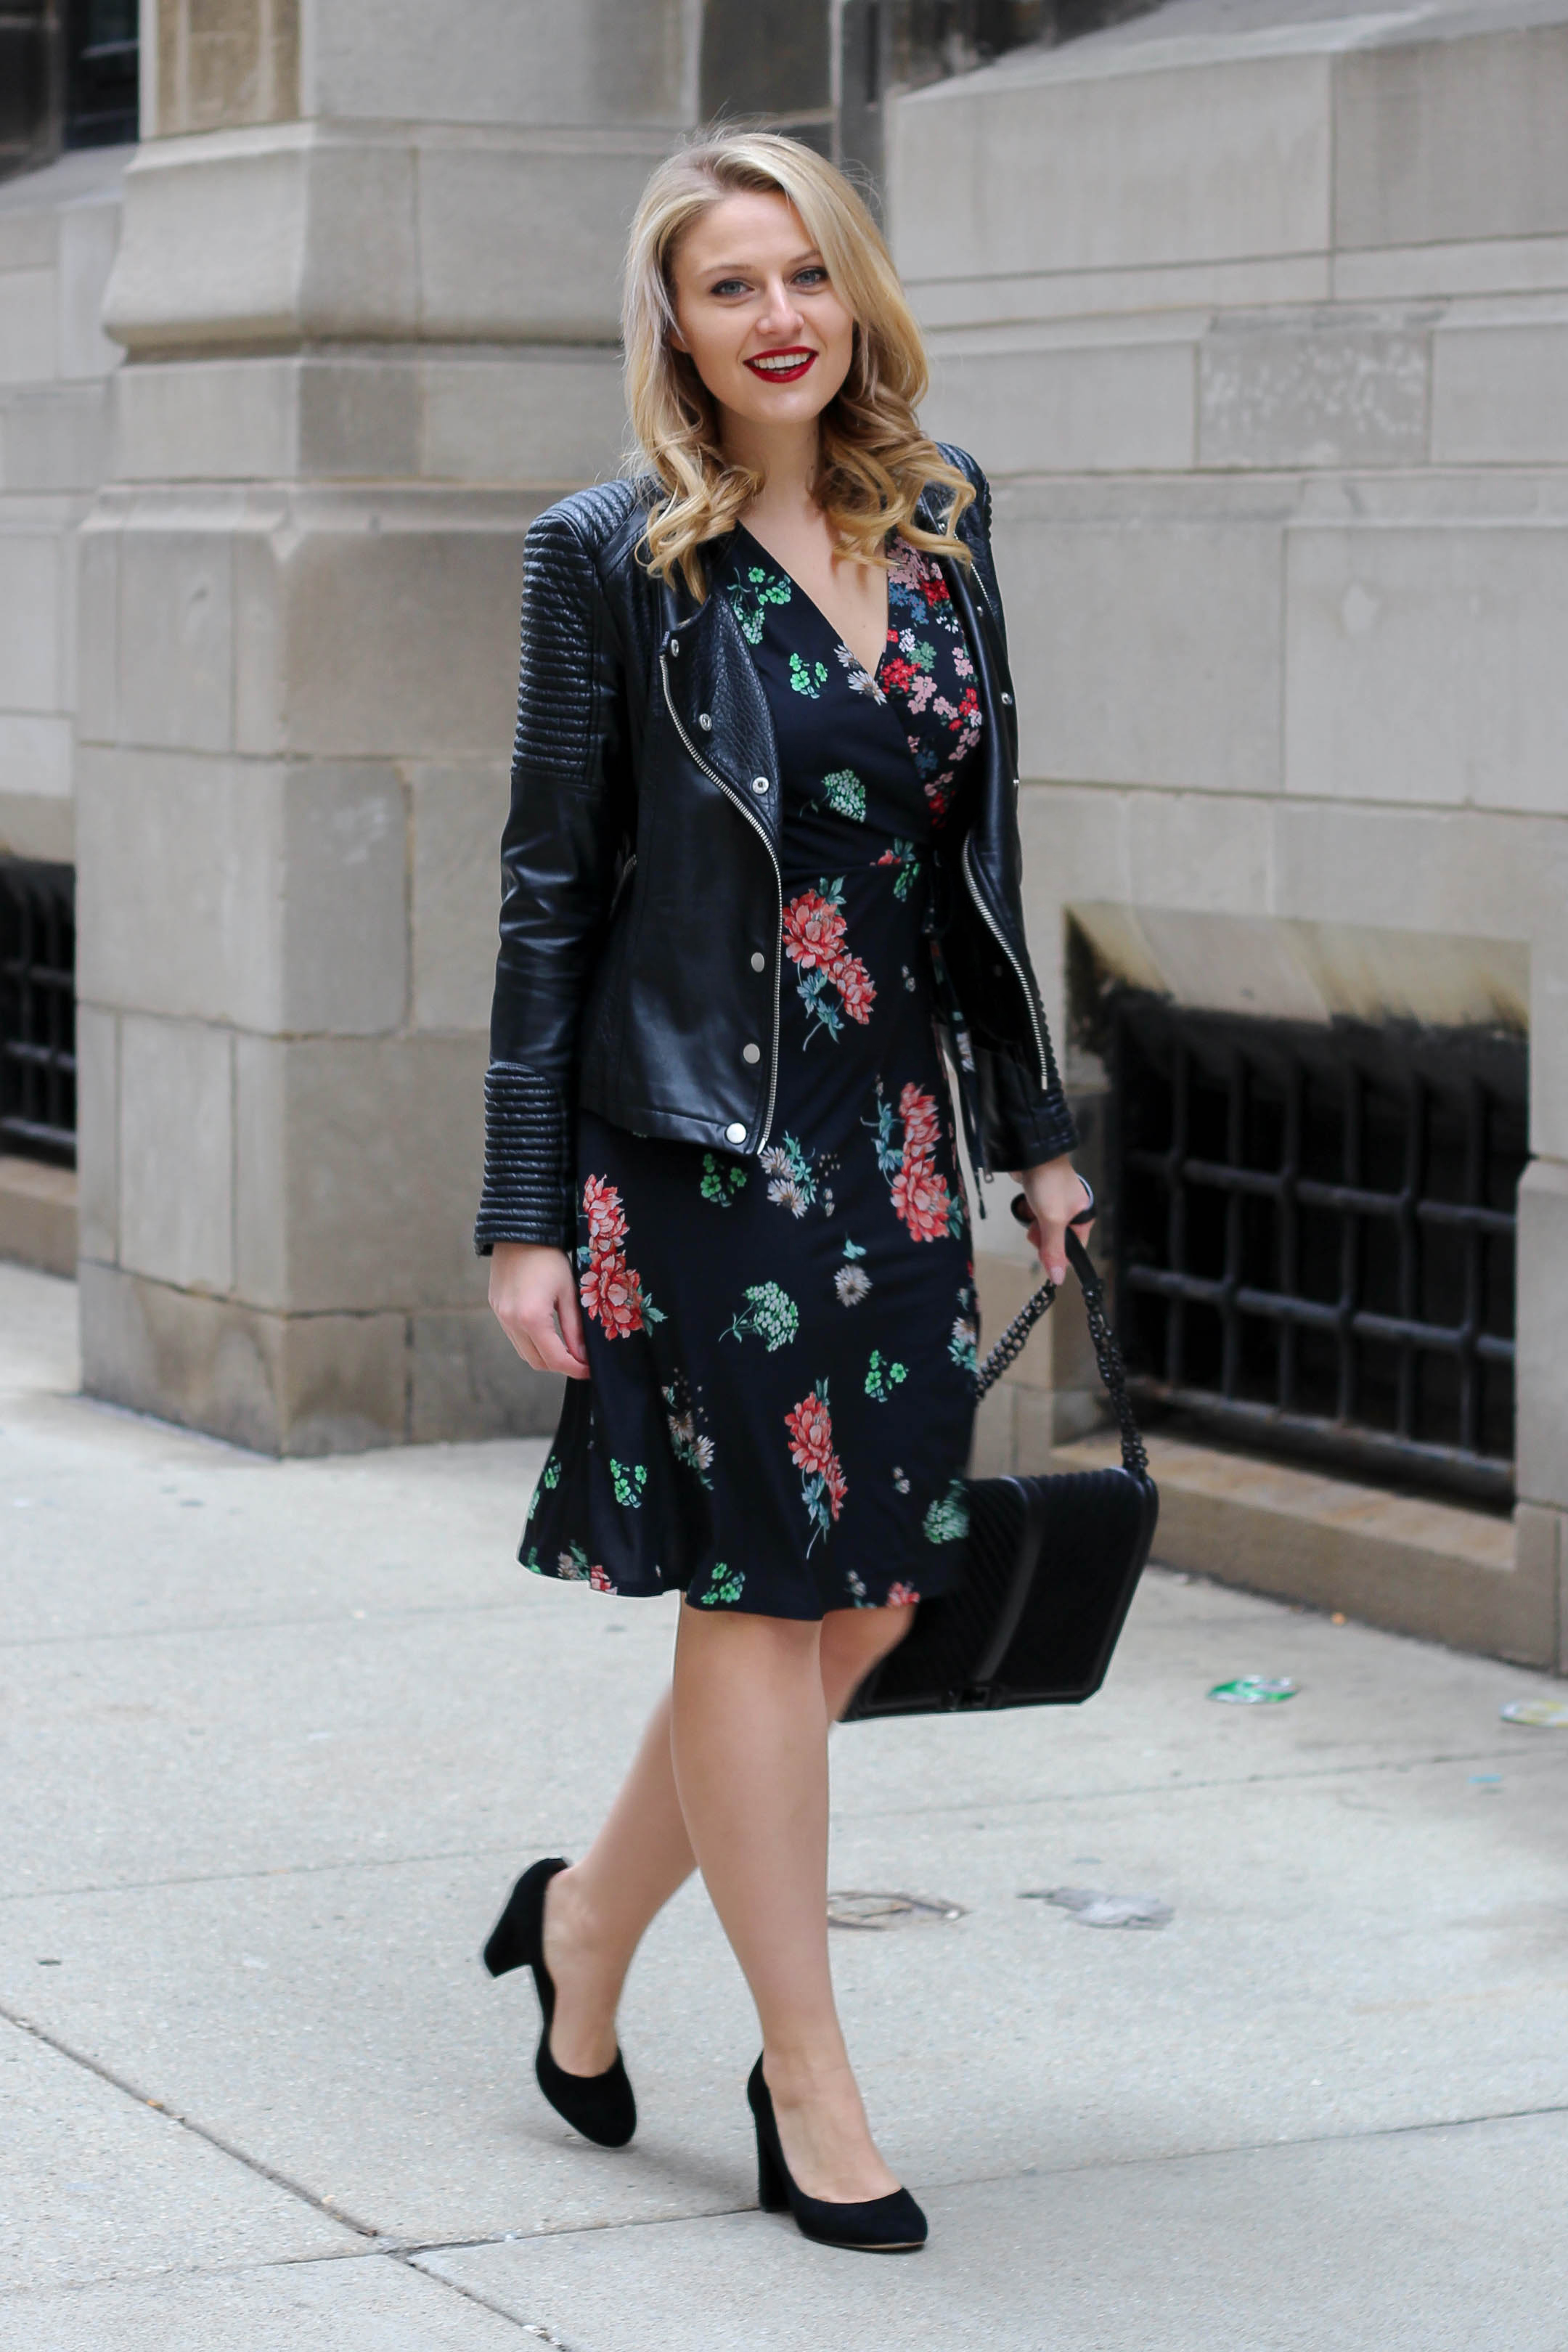 An easy date night outfit wearing a floral midi dress and faux leather biker jacket